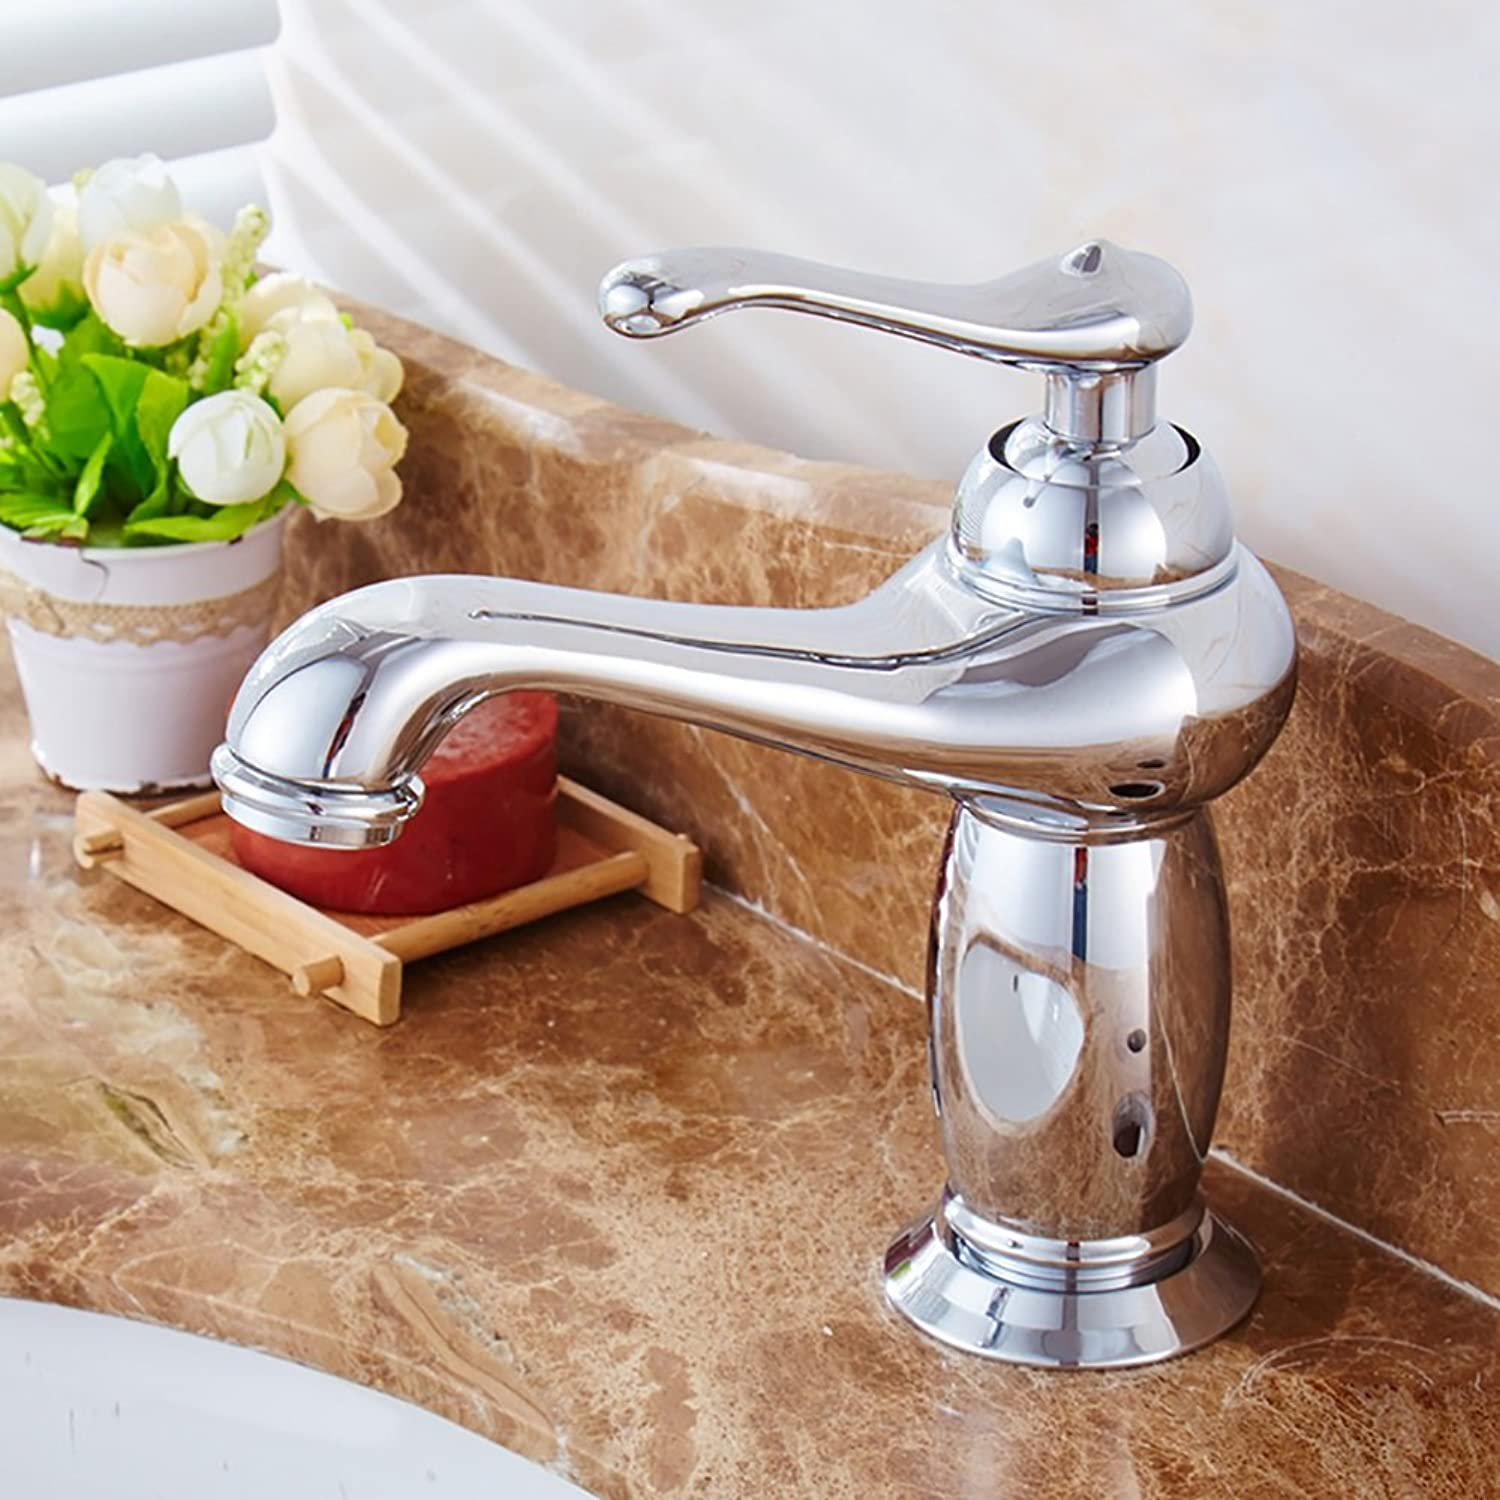 ZJM All Copper Basin Faucet Single Hole Retro Hot And Cold Water Mixer (color   Silver)